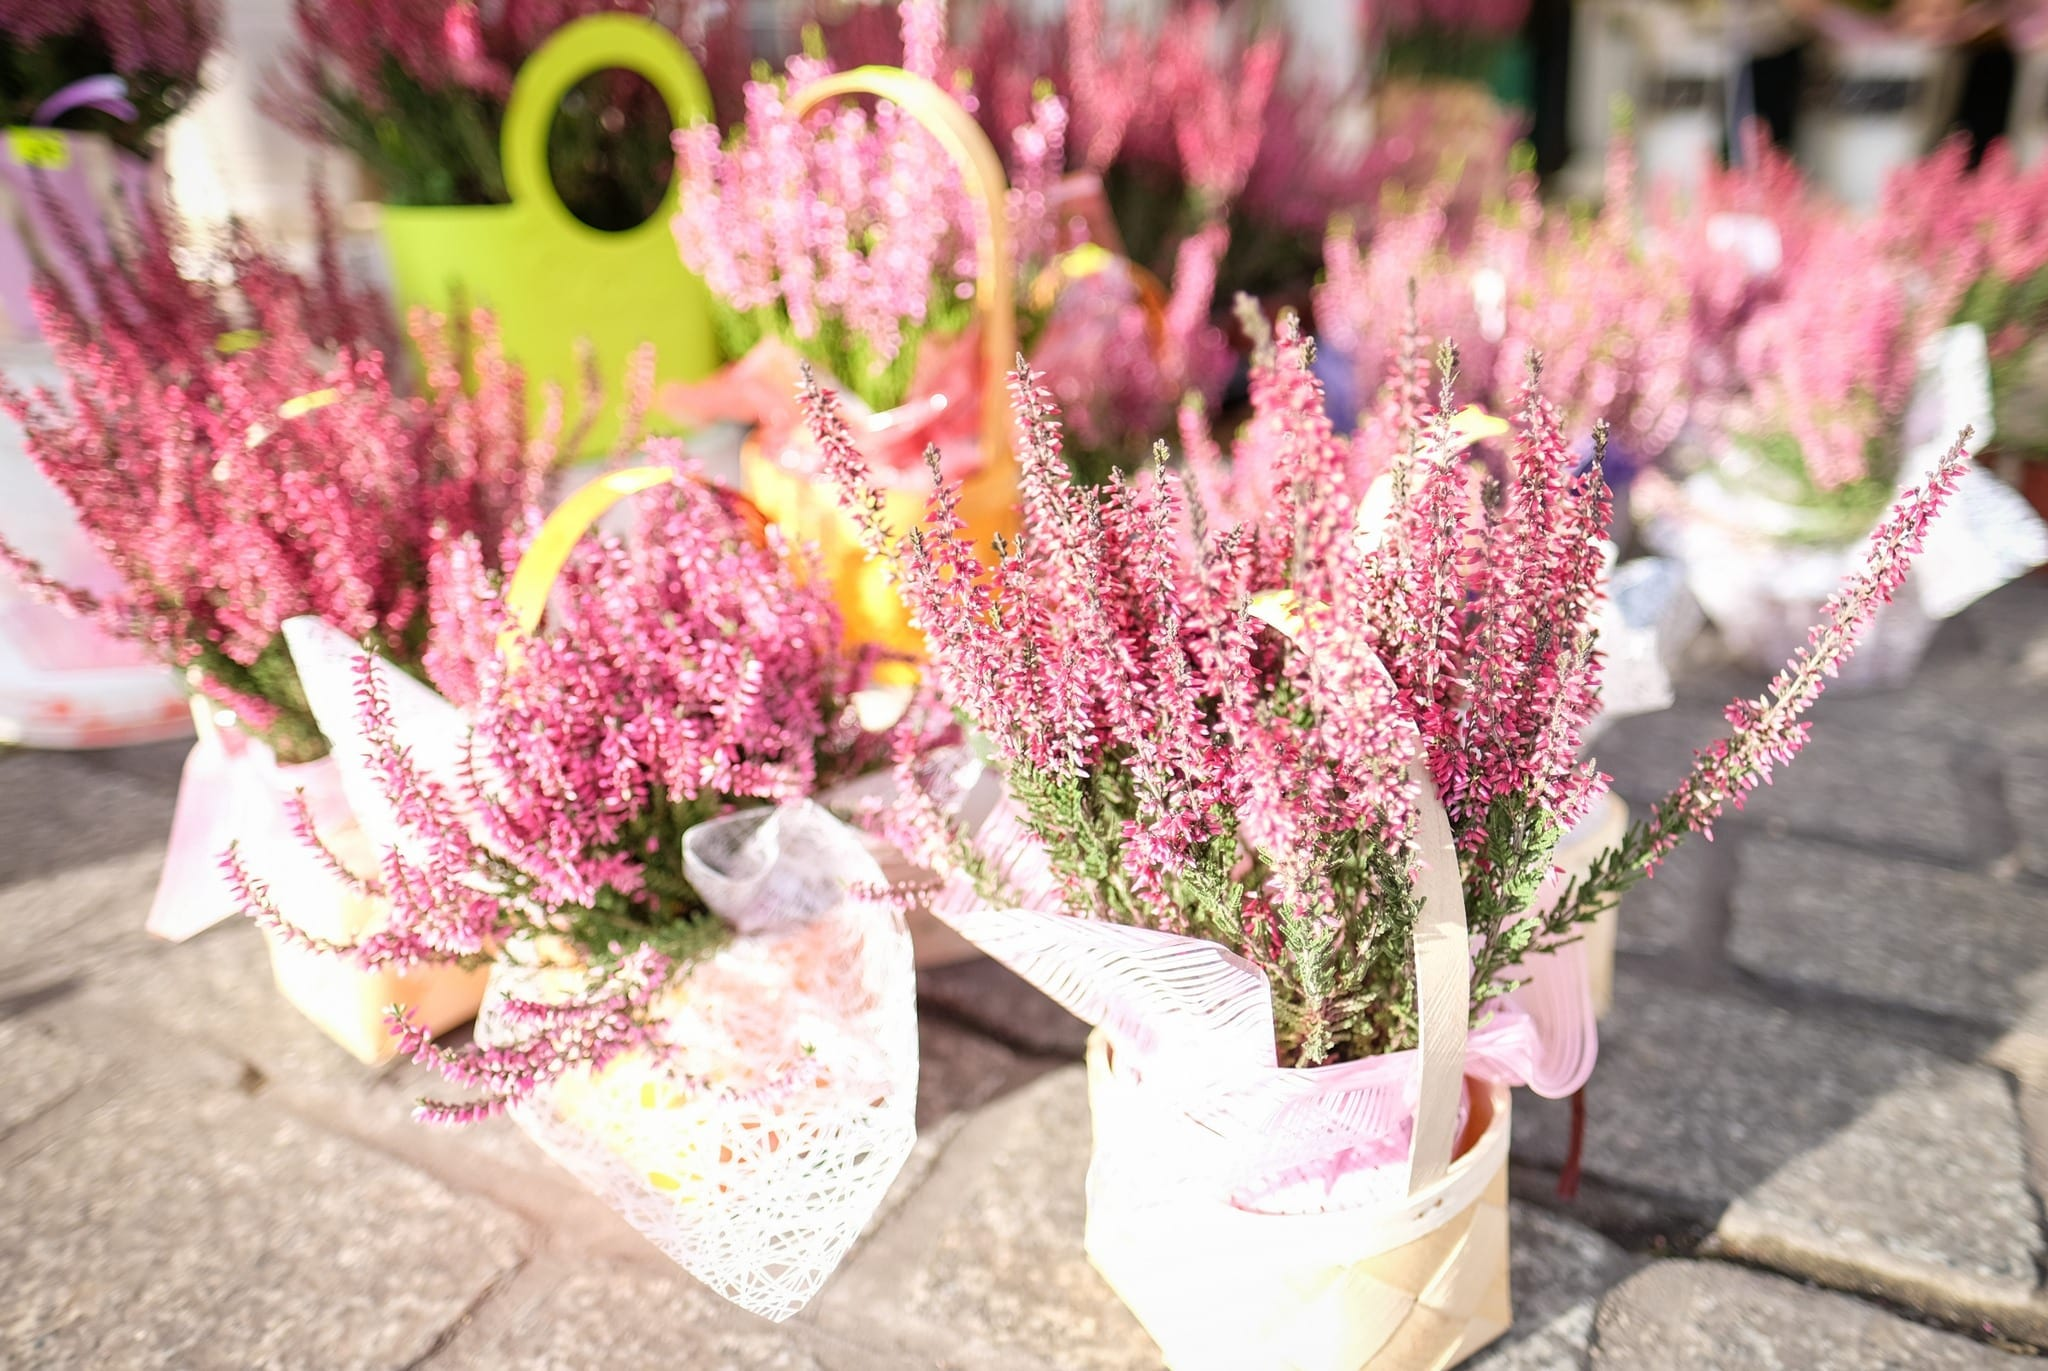 Artificial Decorations Audacious Artificial Greenery Leaf Shape Evergreen Plant Artificial Flowers Plastic Fake Garden Plant Wholesale To Be Highly Praised And Appreciated By The Consuming Public